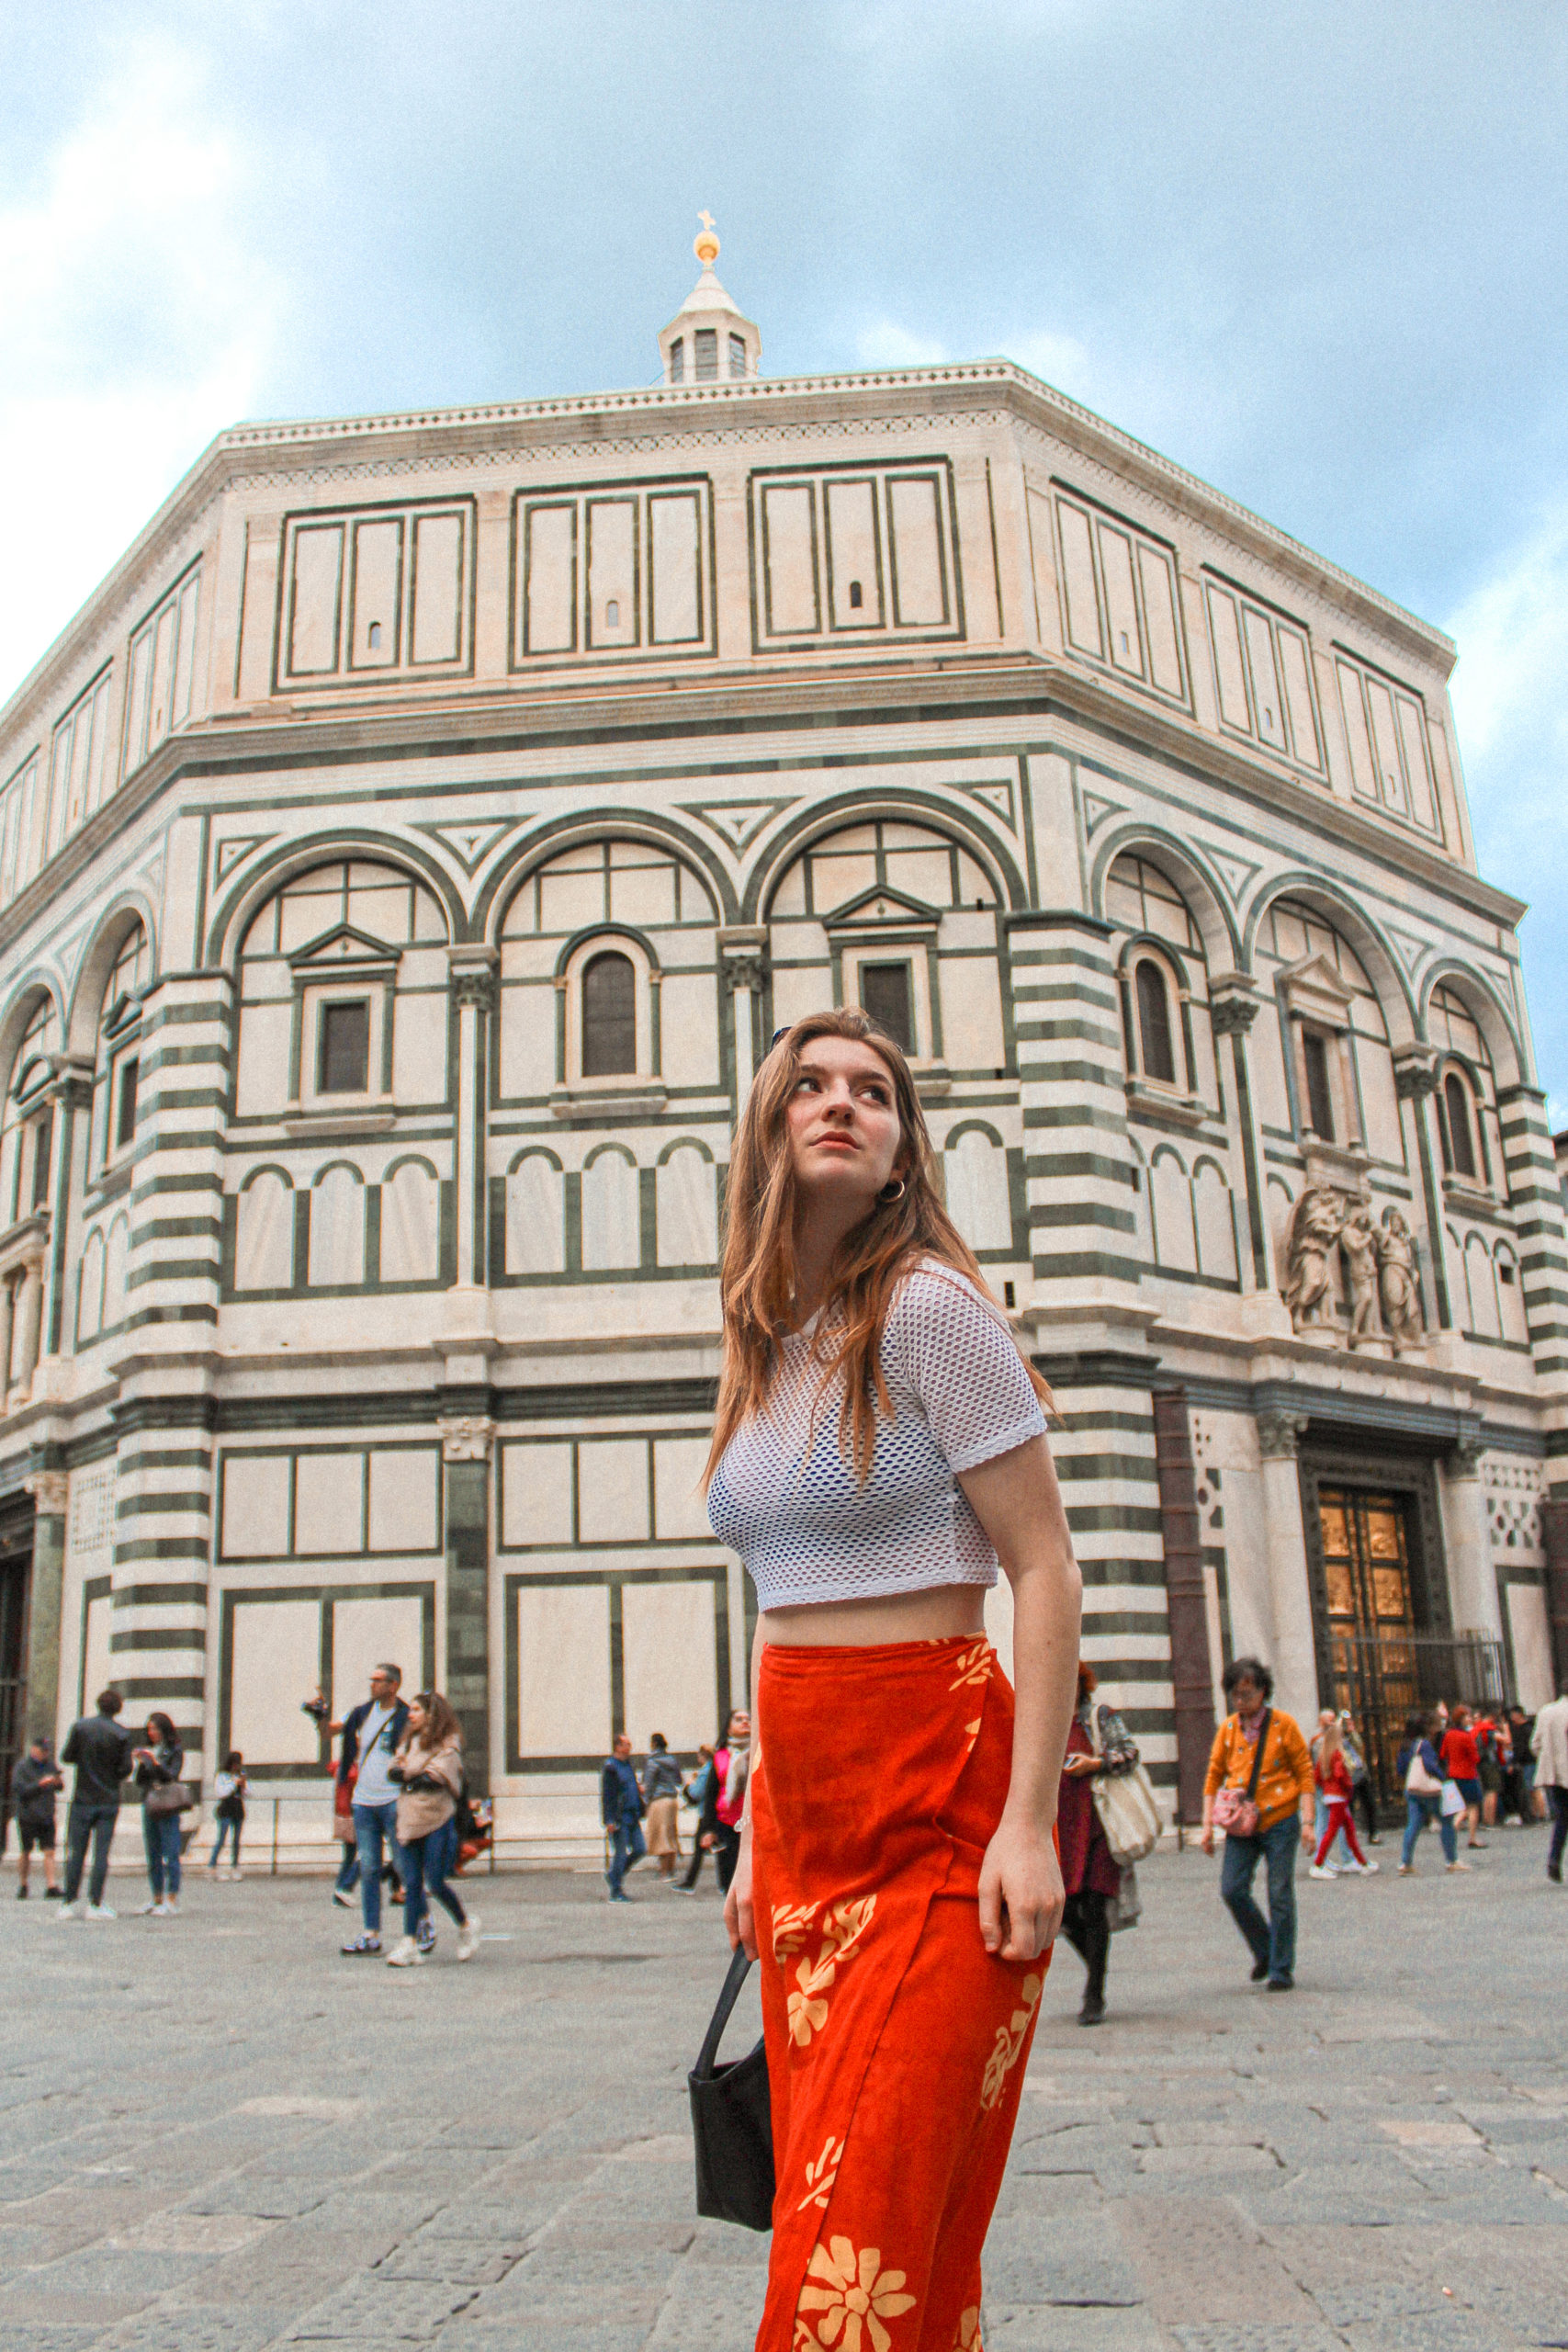 What to visit in Florence- Qué ver en Florencia: Baptistery of St. John- Martina Lubian